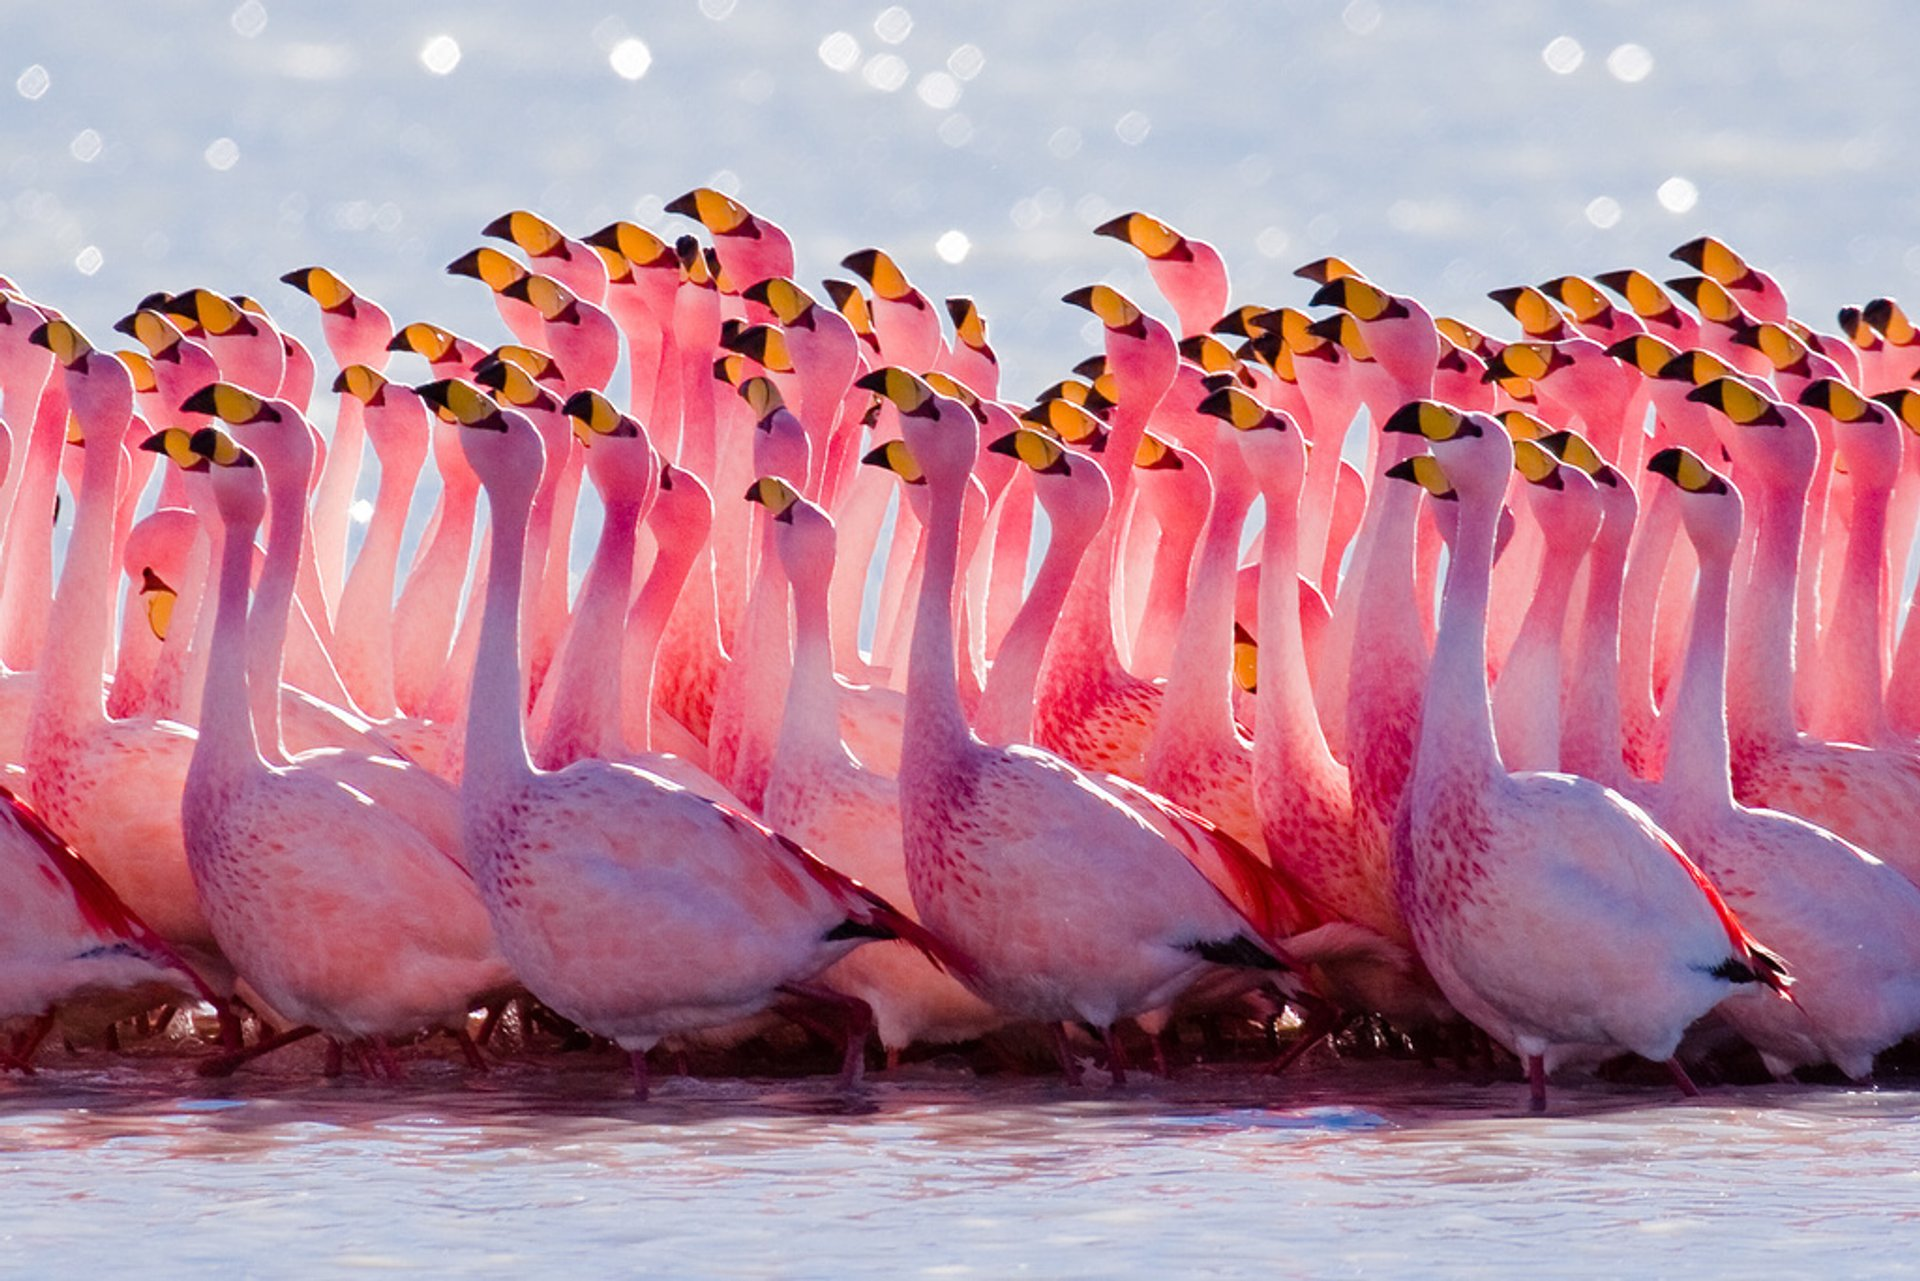 Flamingos in Bolivia 2019 - Best Time